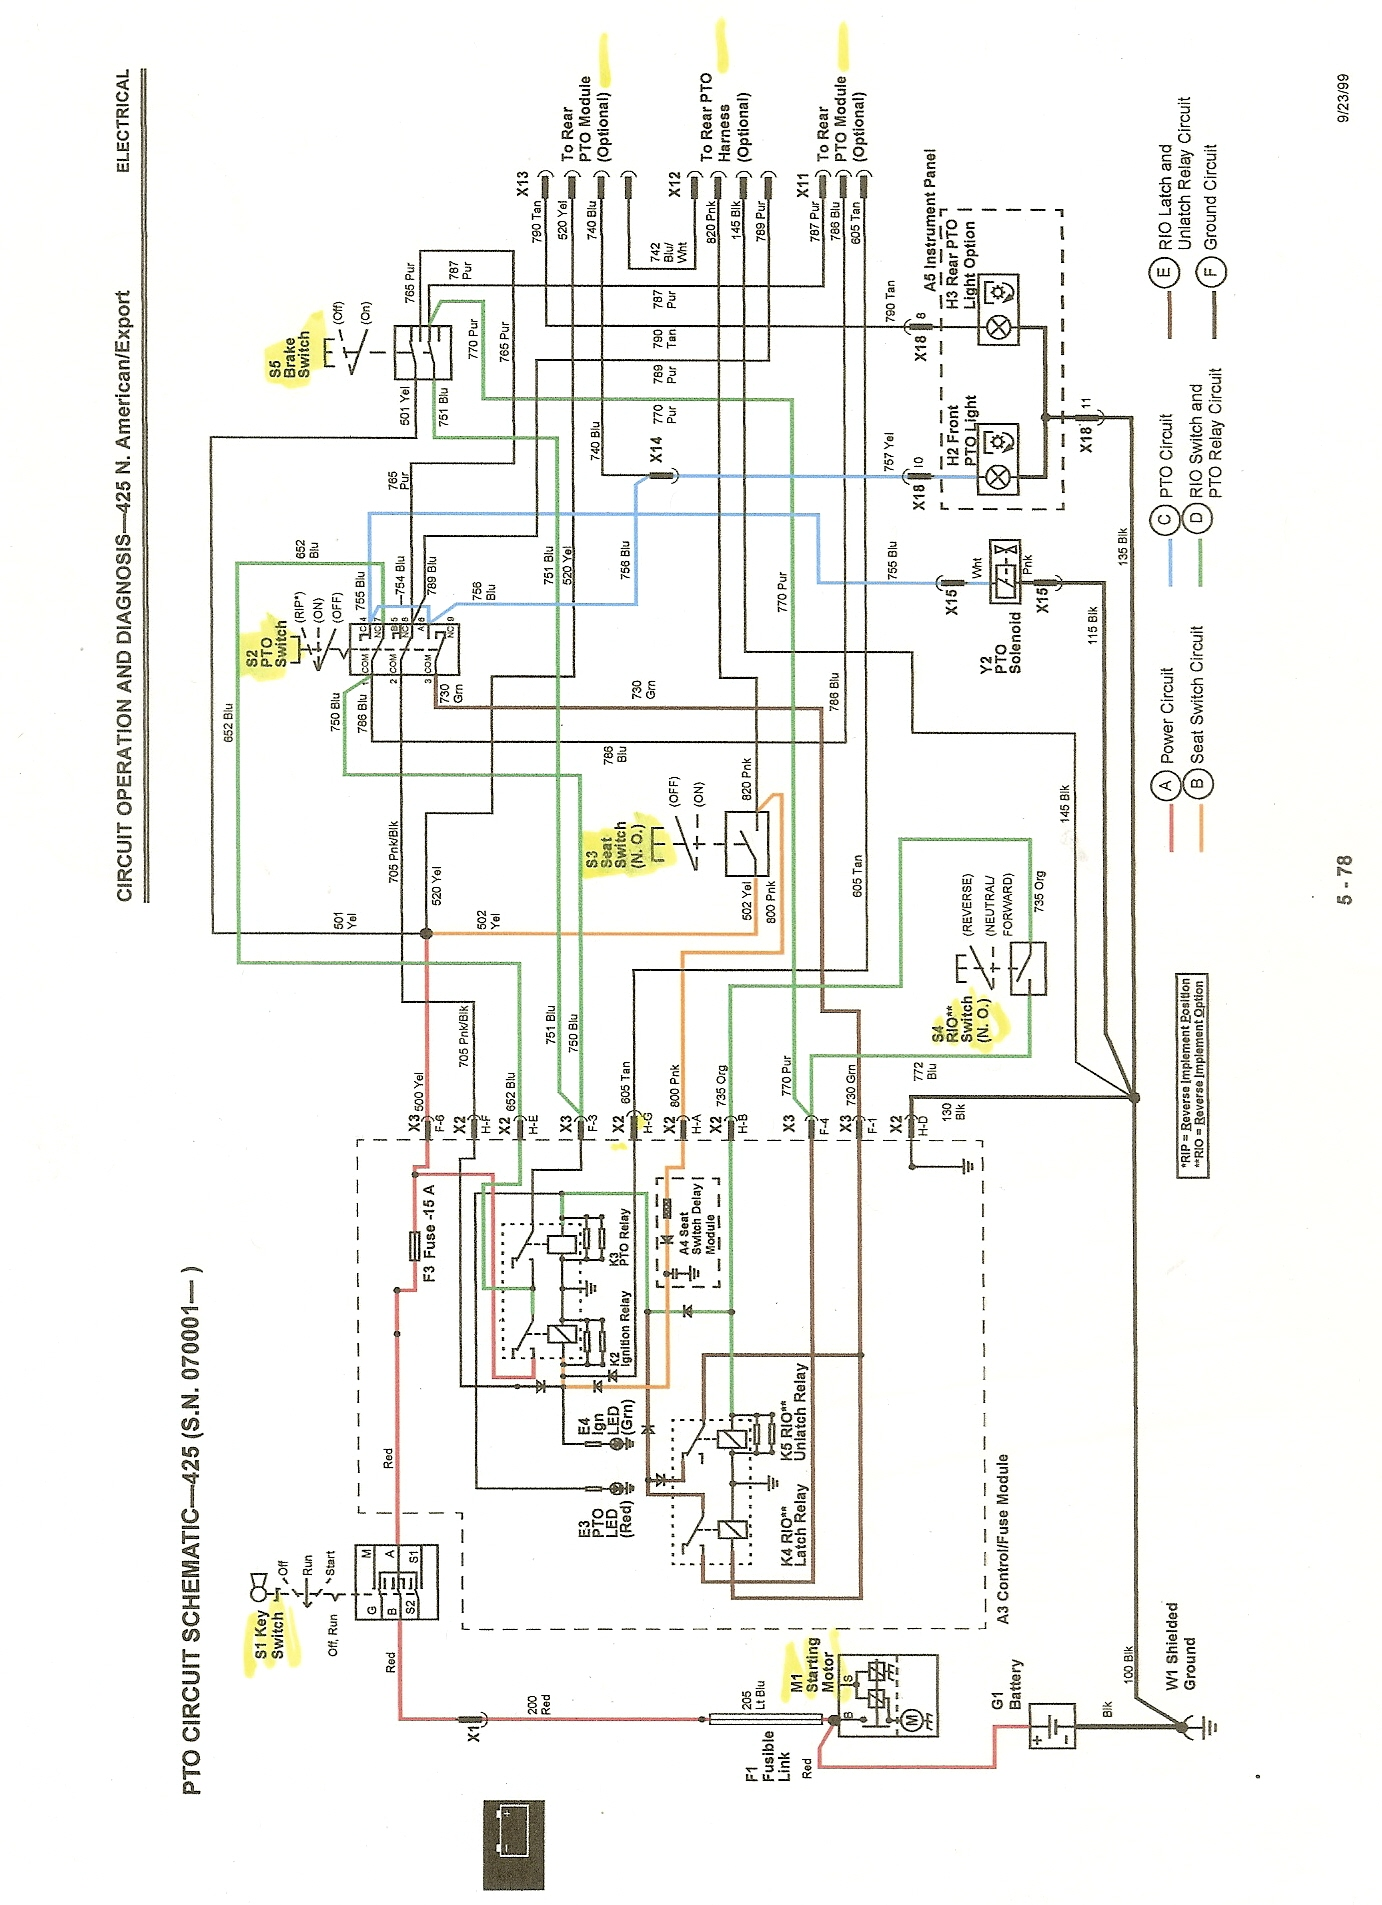 john deere 425 coil, john deere 322 wiring-diagram, john deere 425 exhaust, john deere 145 wiring-diagram, john deere 425 pto solenoid, john deere 425 ignition problem, john deere 425 carburetor, john deere 5103 wiring-diagram, john deere 425 cooling system, john deere 425 ignition module, john deere d130 wiring-diagram, john deere 6400 wiring-diagram, john deere 425 battery, john deere lx255 wiring-diagram, john deere 425 engine problems, john deere 425 headlights, john deere 155c wiring-diagram, john deere 425 engine diagrams, john deere 425 electrical problems, john deere z425 wiring-diagram, on john deere 425 wiring diagram